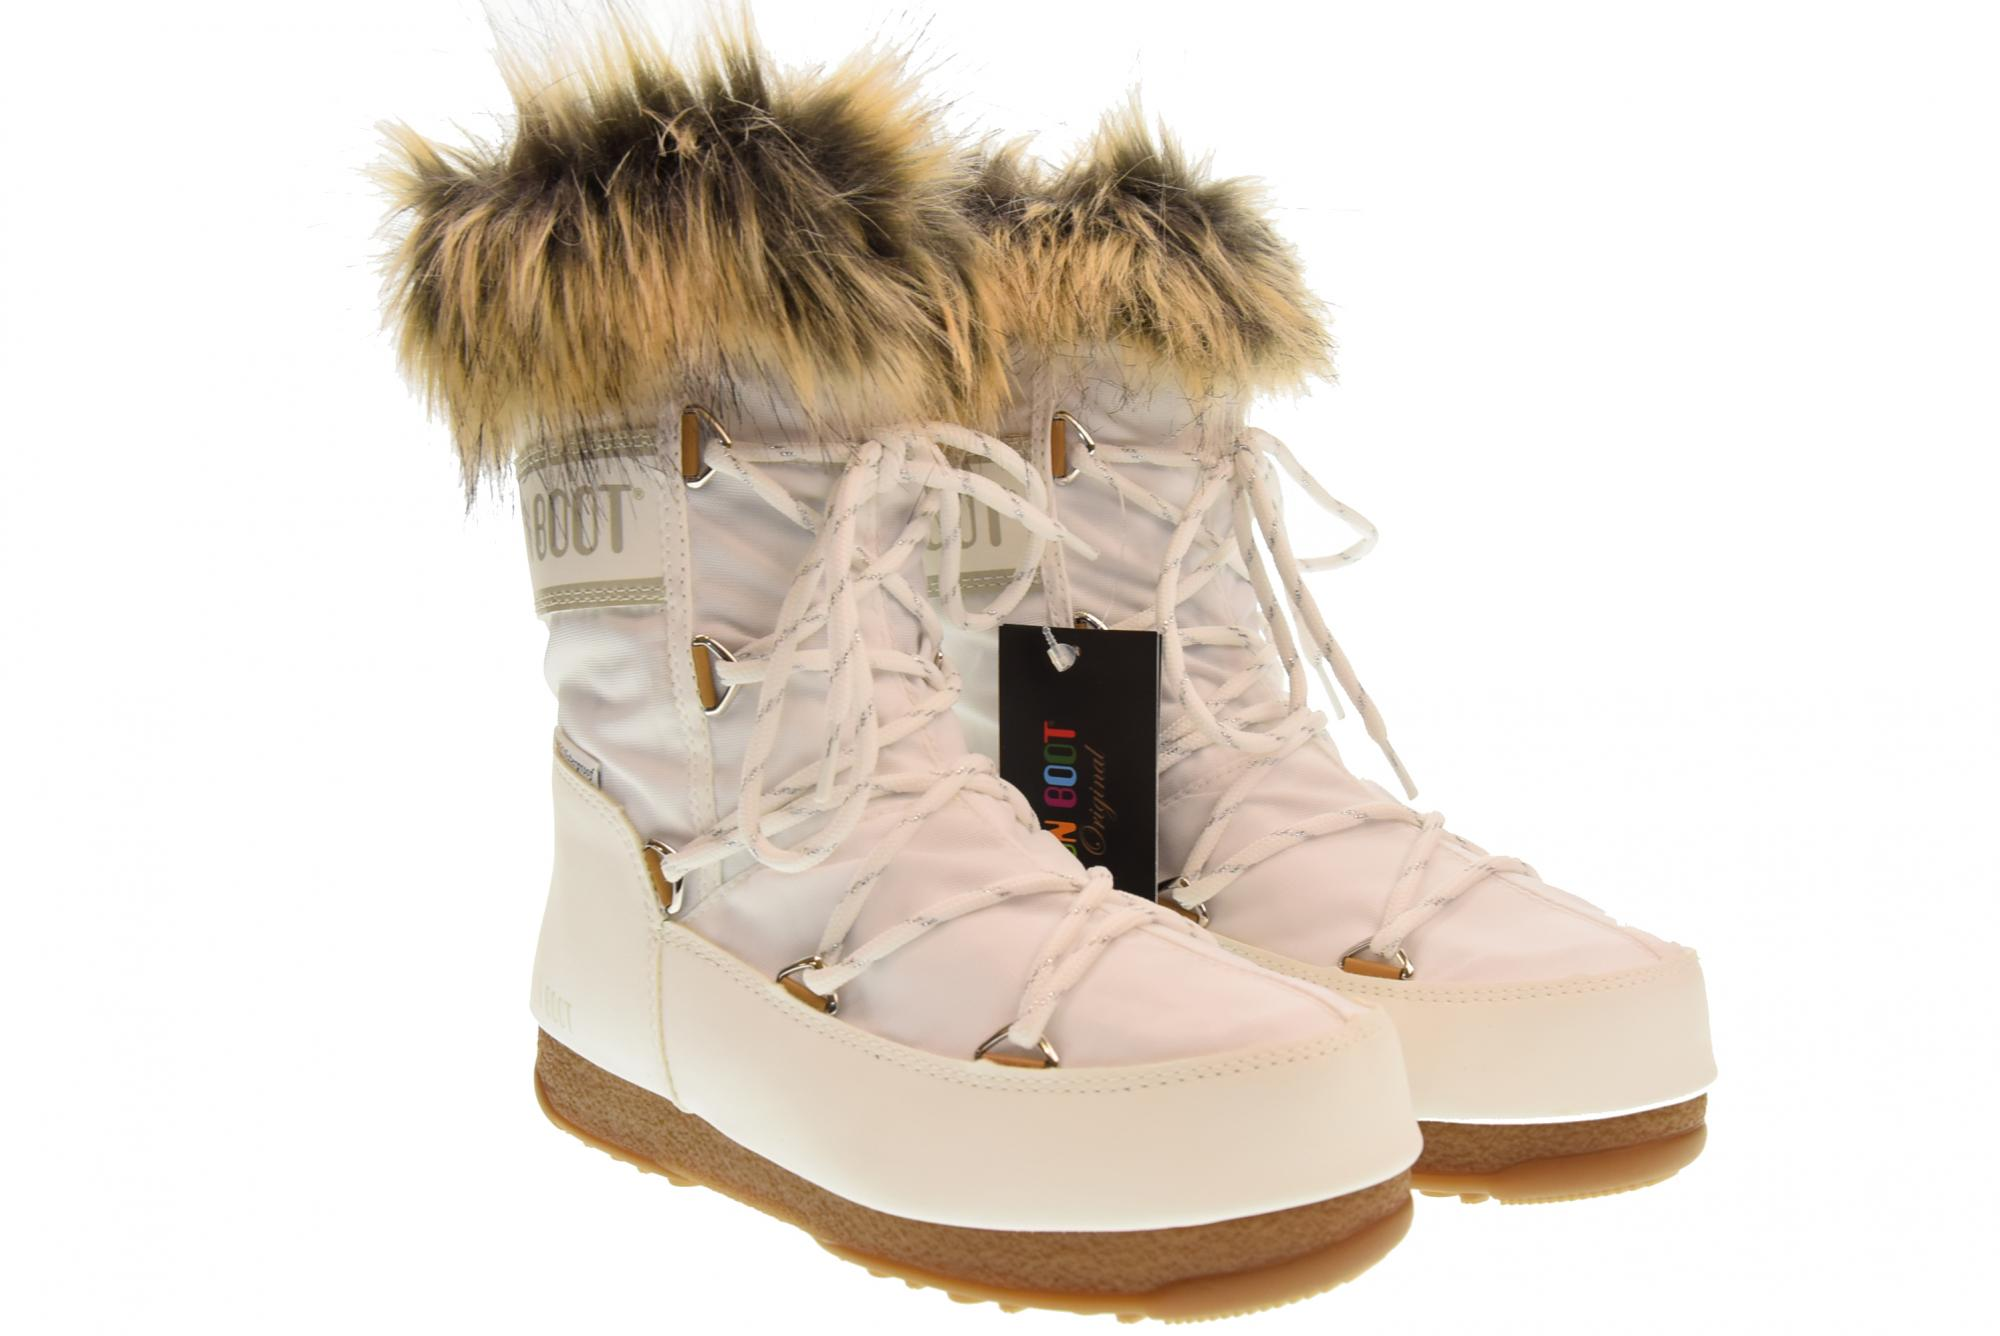 Moon Boot A18us woman shoes MOON BOOT W.E.  MONACO LOW 24002900002 BIANCO  brand on sale clearance